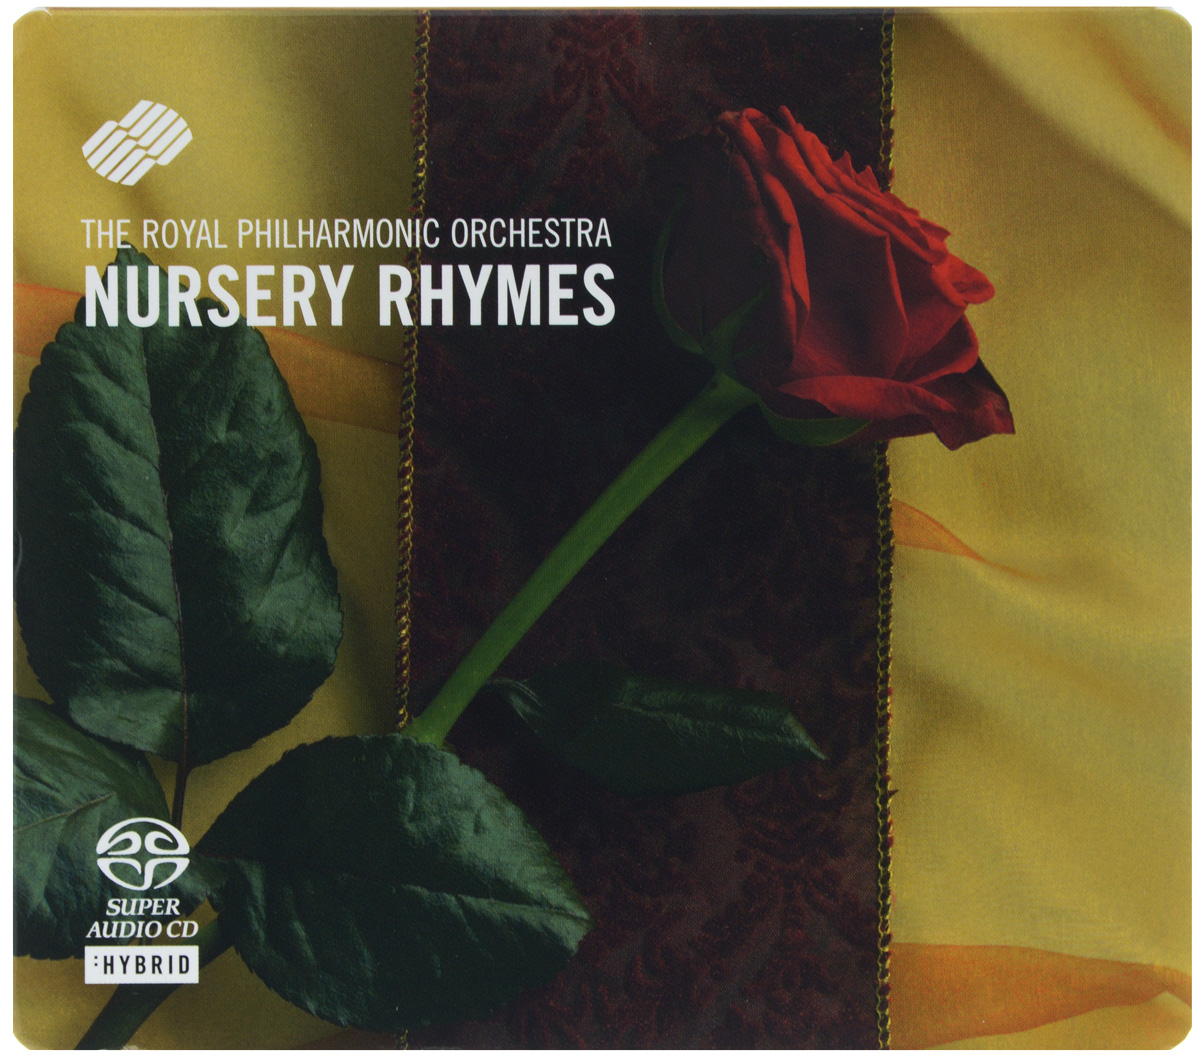 цена The Royal Philharmonic Orchestra The Royal Philharmonic Orchestra. Nursery Rhymes (SACD) онлайн в 2017 году